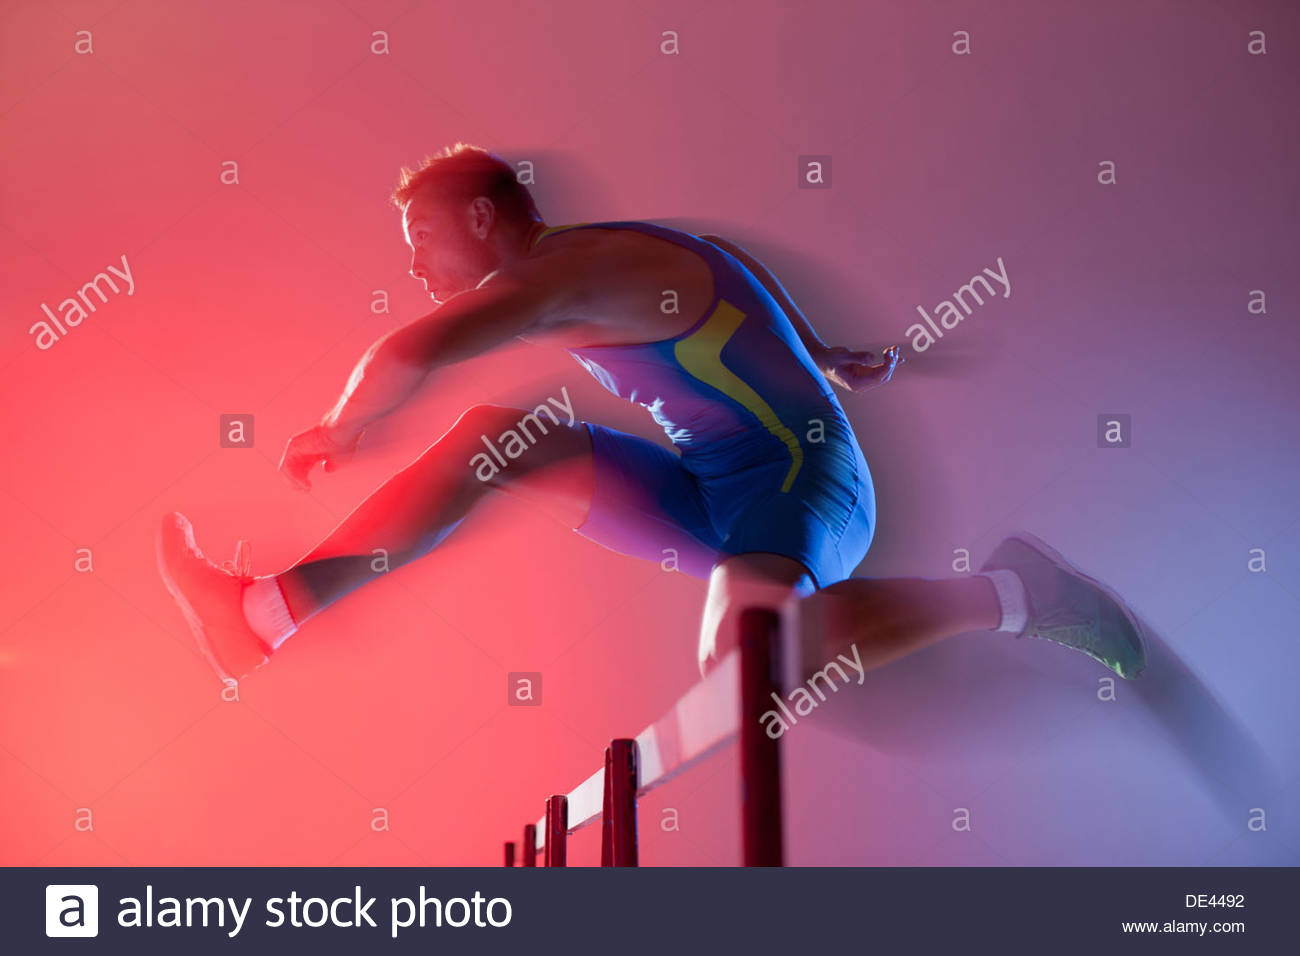 Blurred view of athlete jumping hurdles - Stock Image